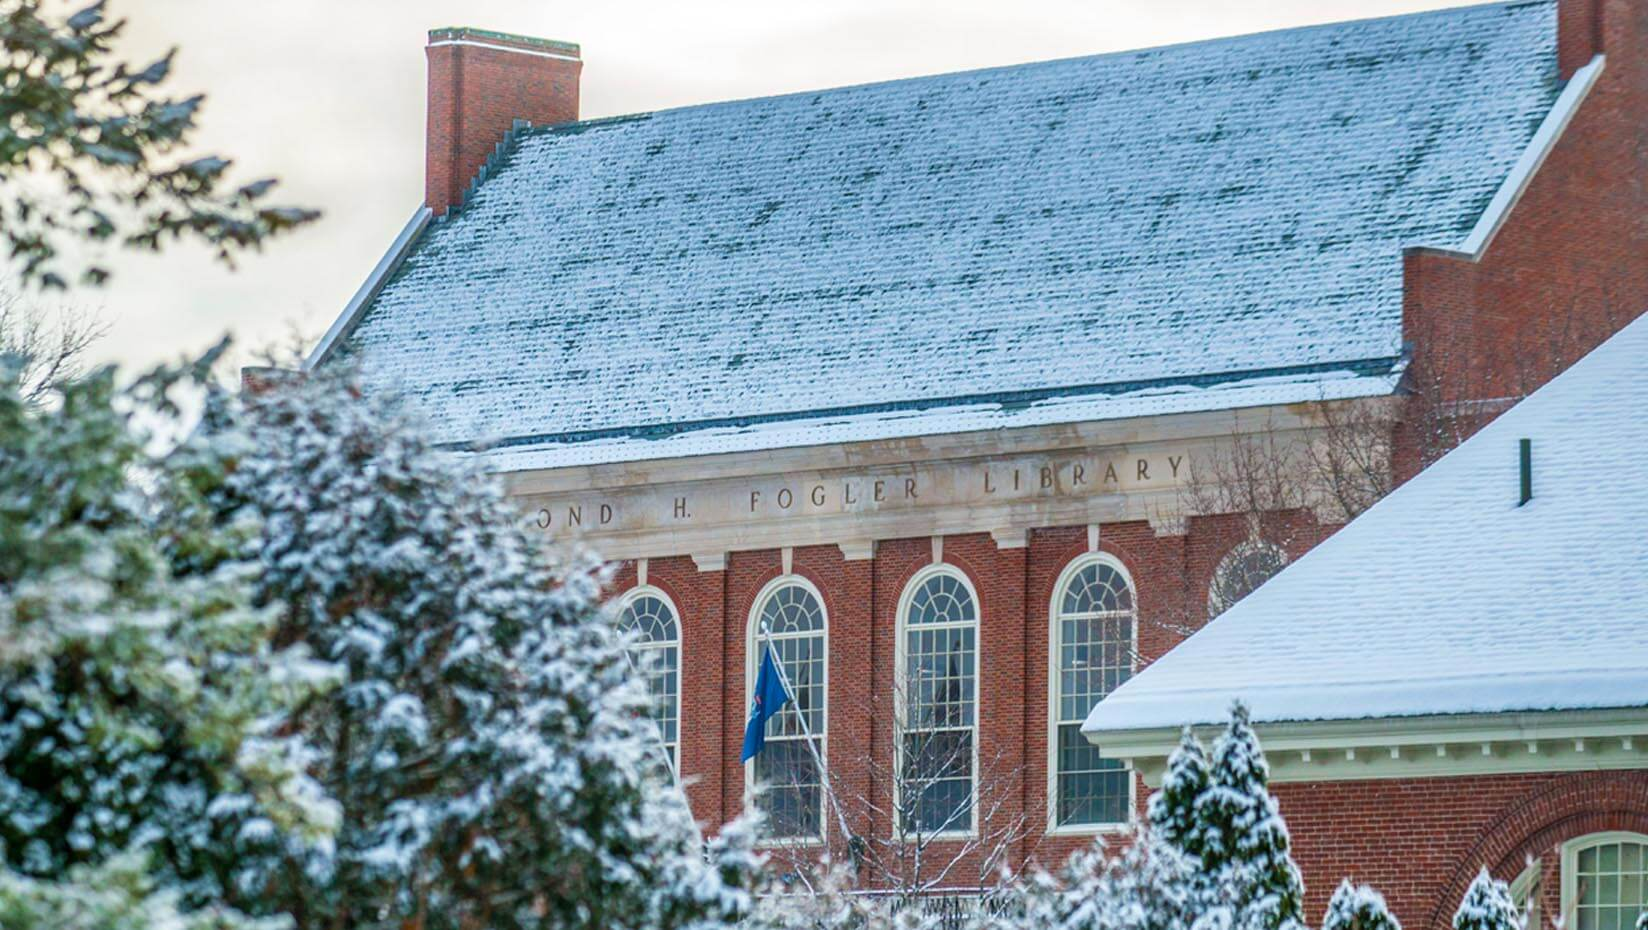 Fogler Library roofline in winter